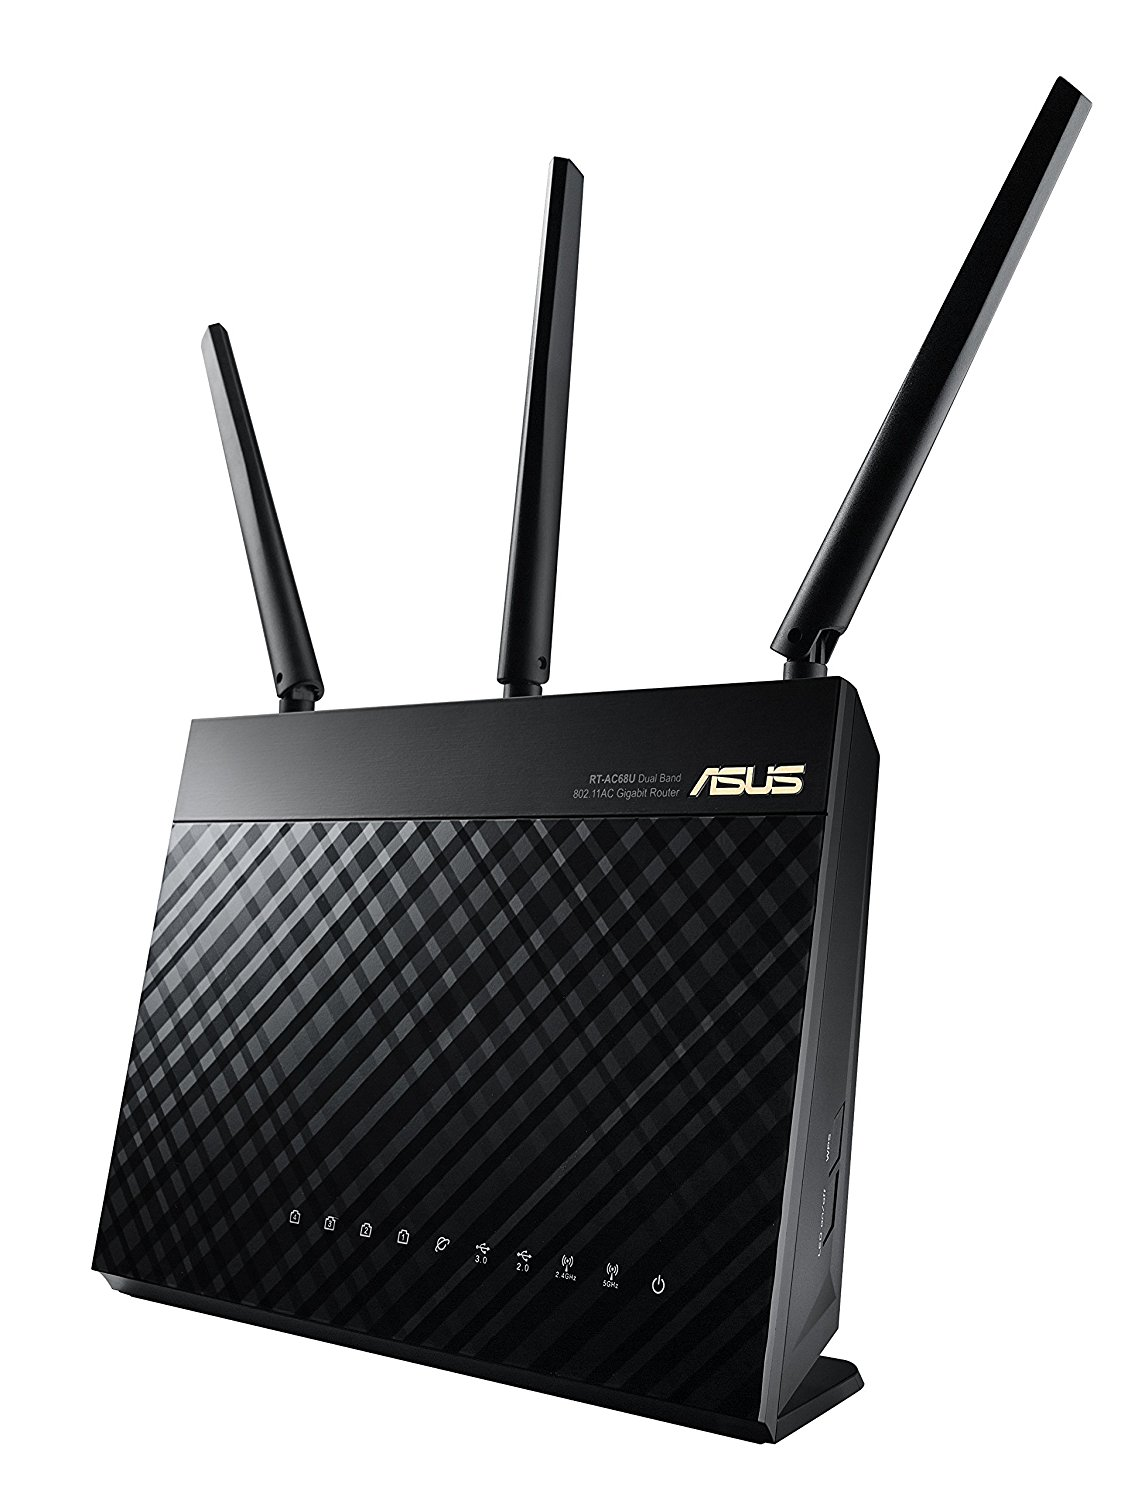 ASUS AC1900 WiFi Dual-band 3x3 Gigabit Wireless Router